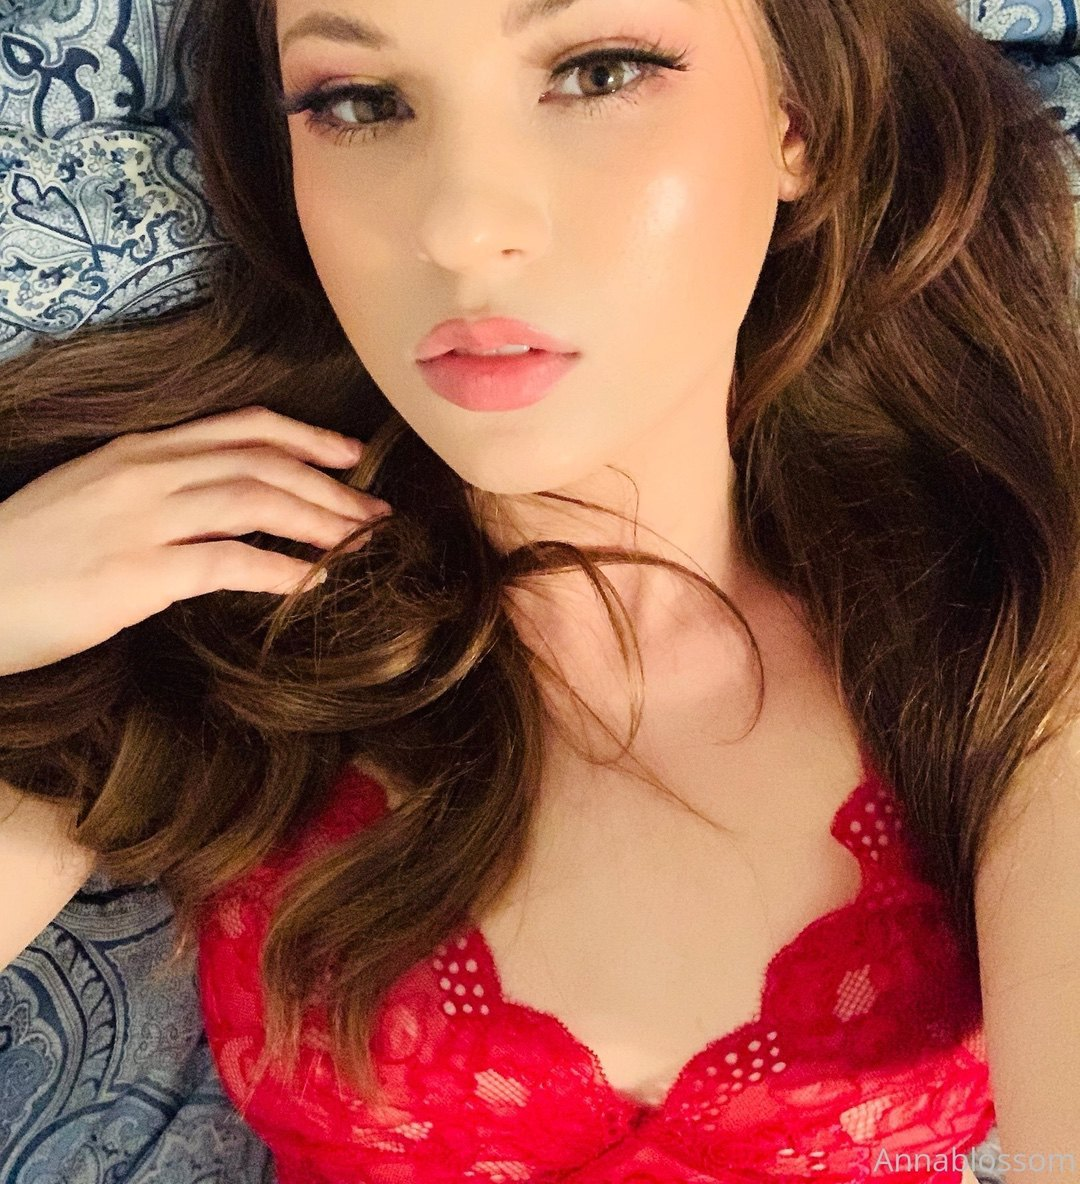 Annablossom Onlyfans Nudes Leaks 0011